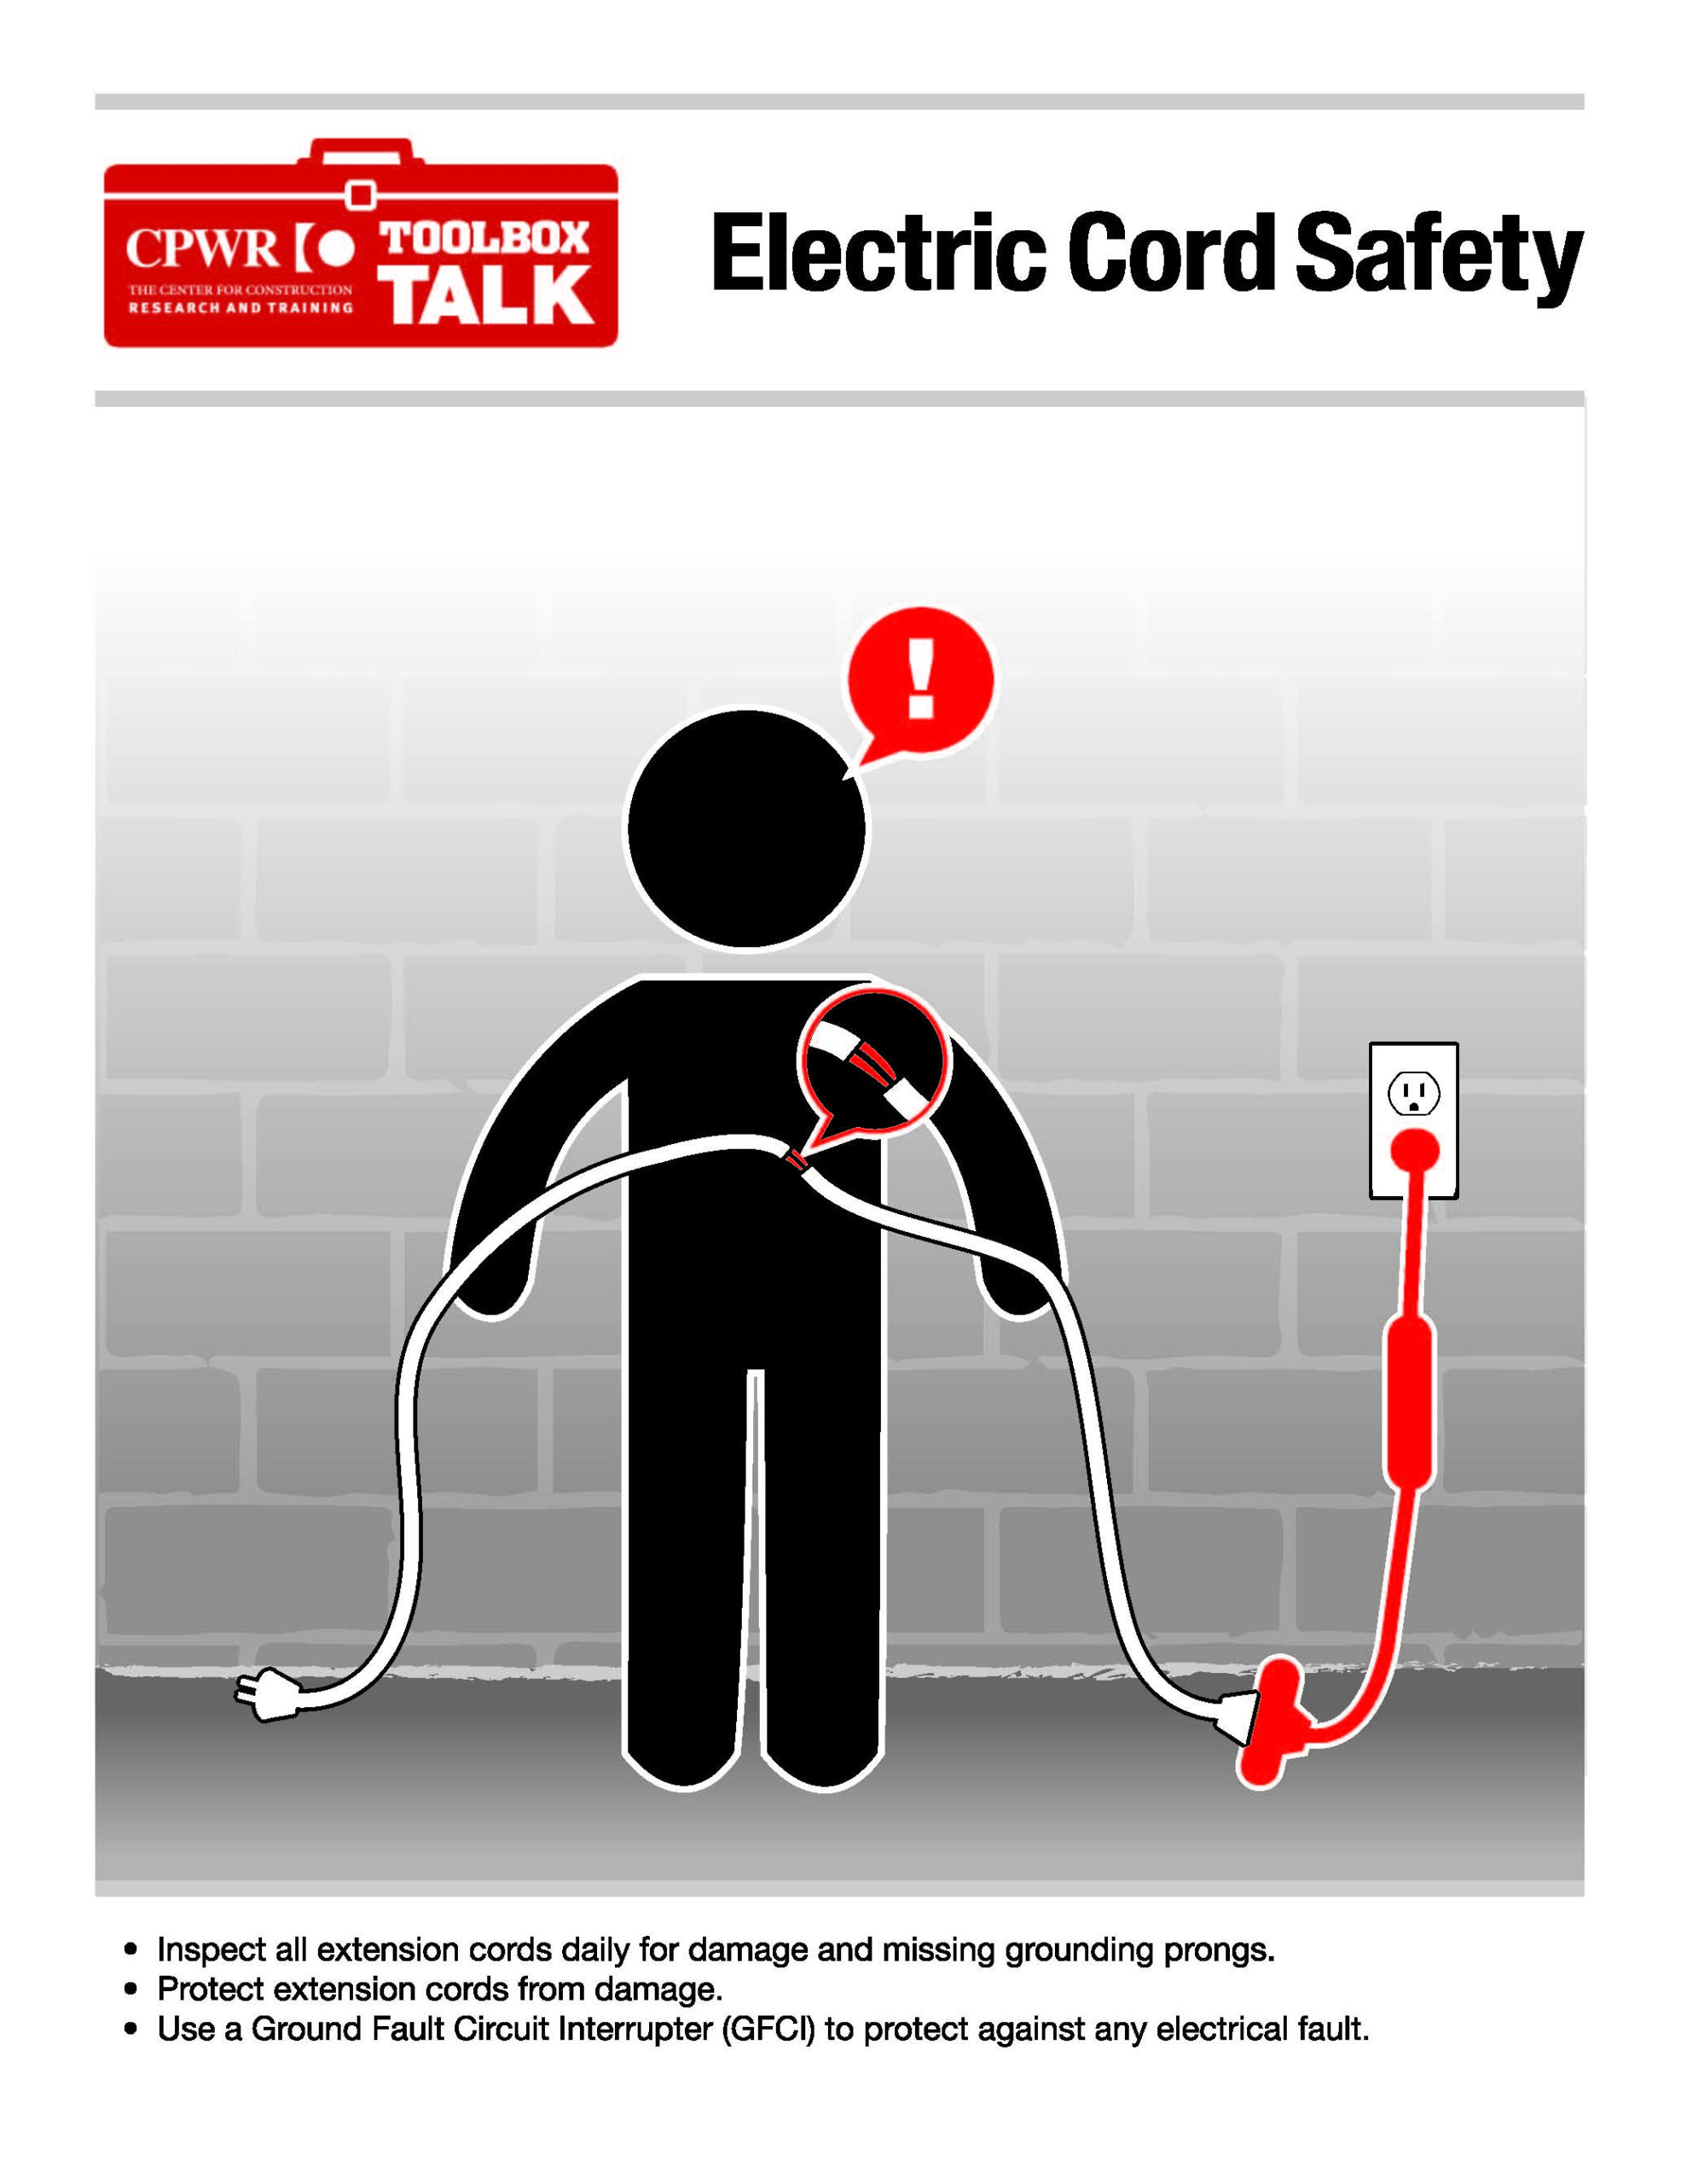 CPWR_ElectricCord_Safety